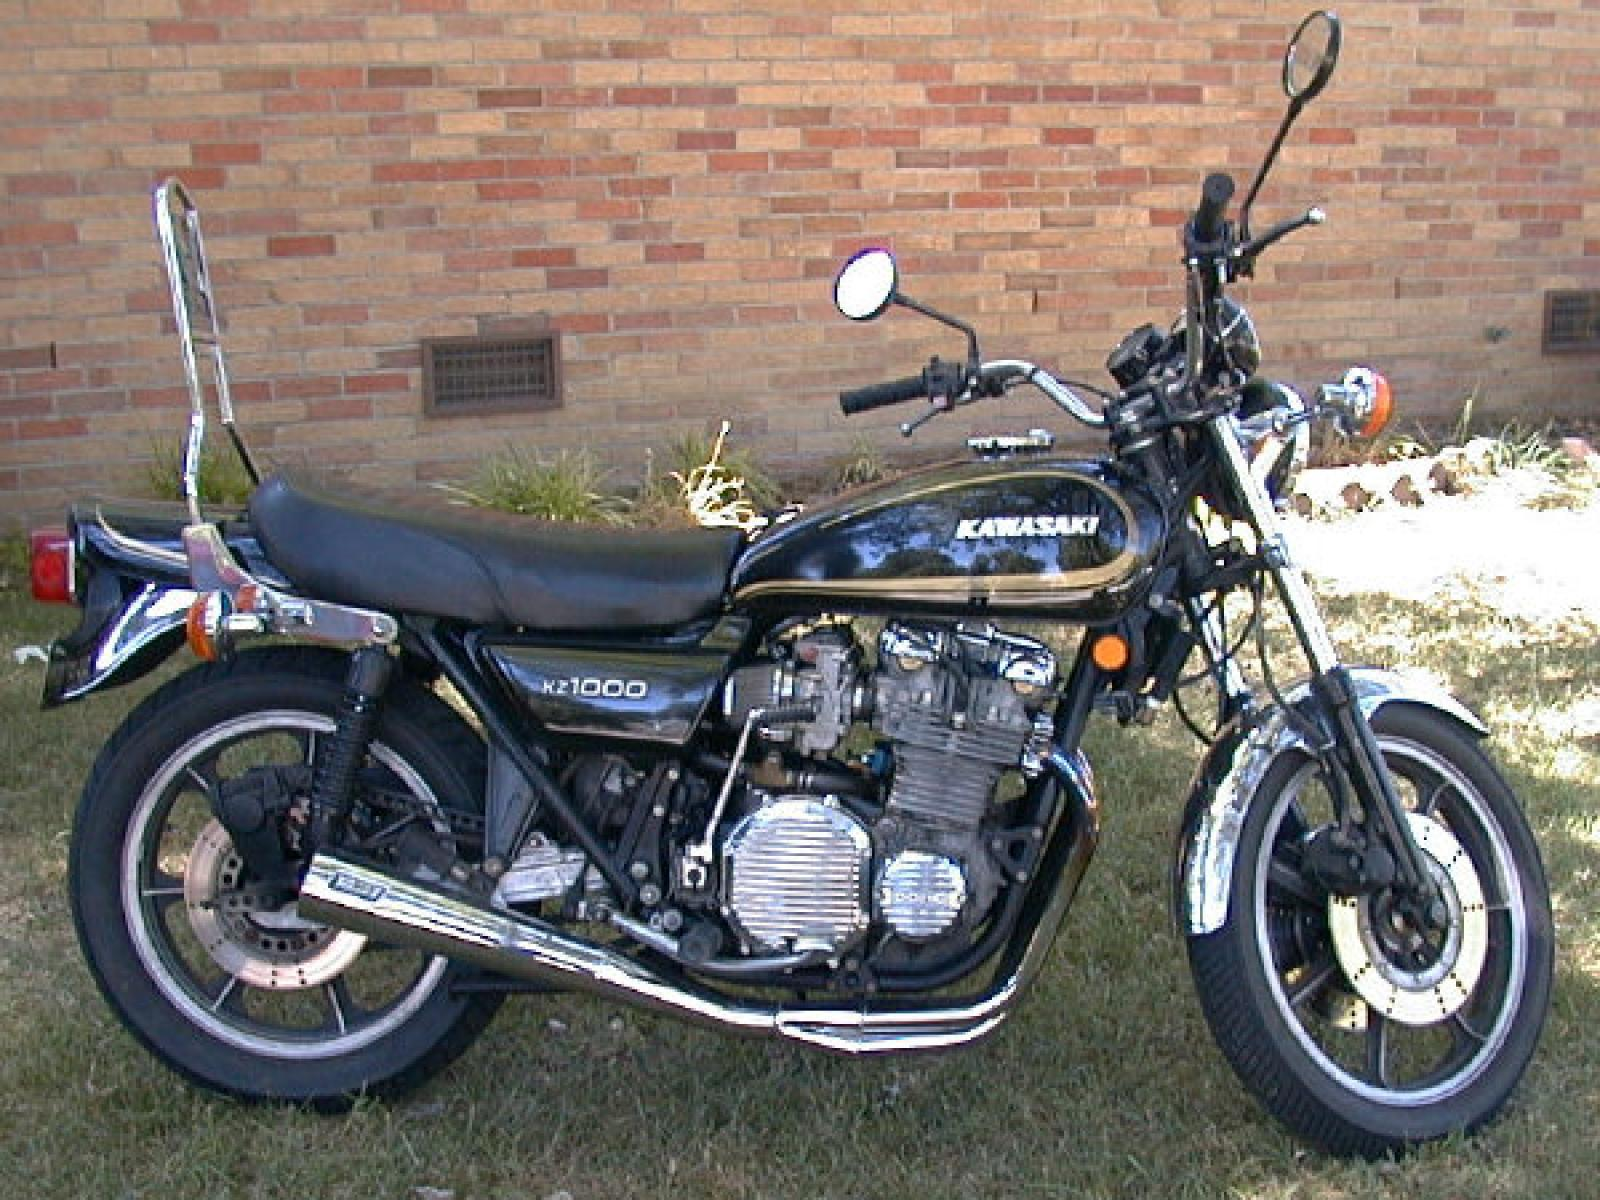 1981 Kz550 Ltd Wiring Diagram - Wiring Diagrams List on